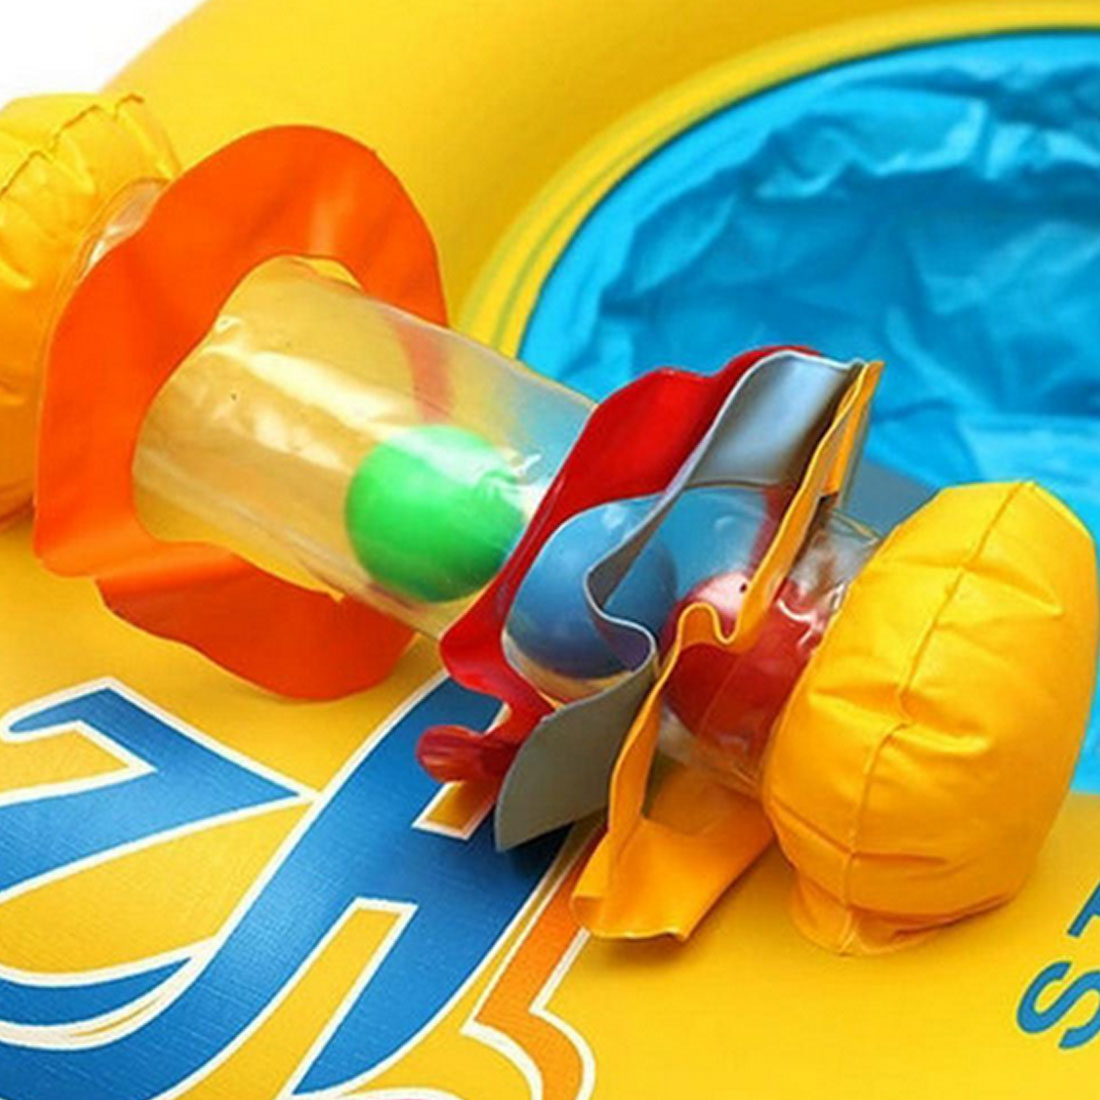 Seat Circle Double Baby Swimming Ring Inflatable Floats Bathtub Pool Toy Bathing Inflatable Double Raft Rings Toy